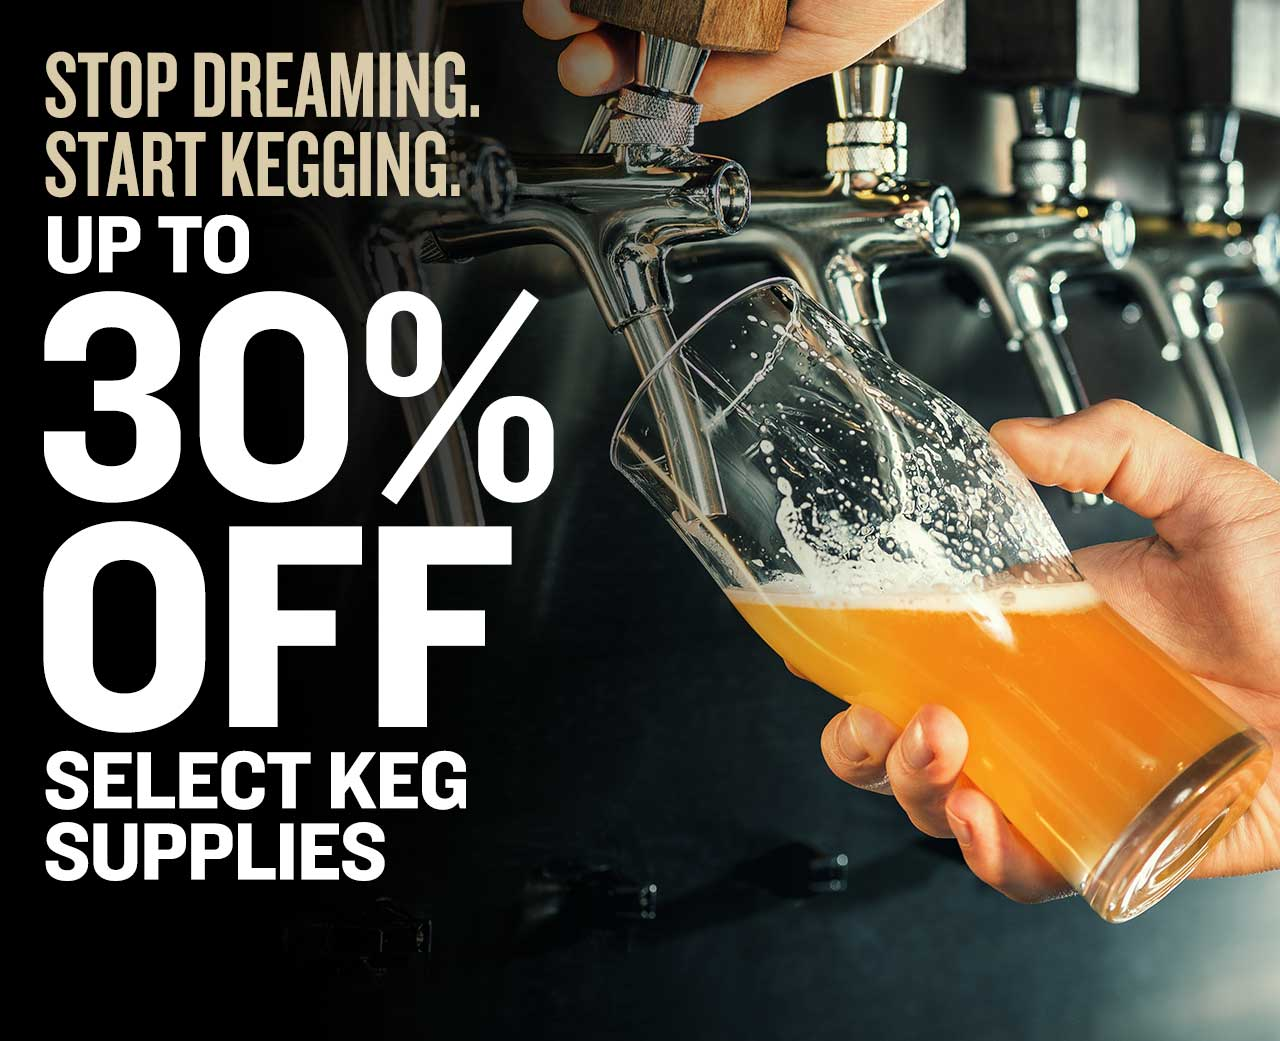 Up to 30% Off Keggin supplies